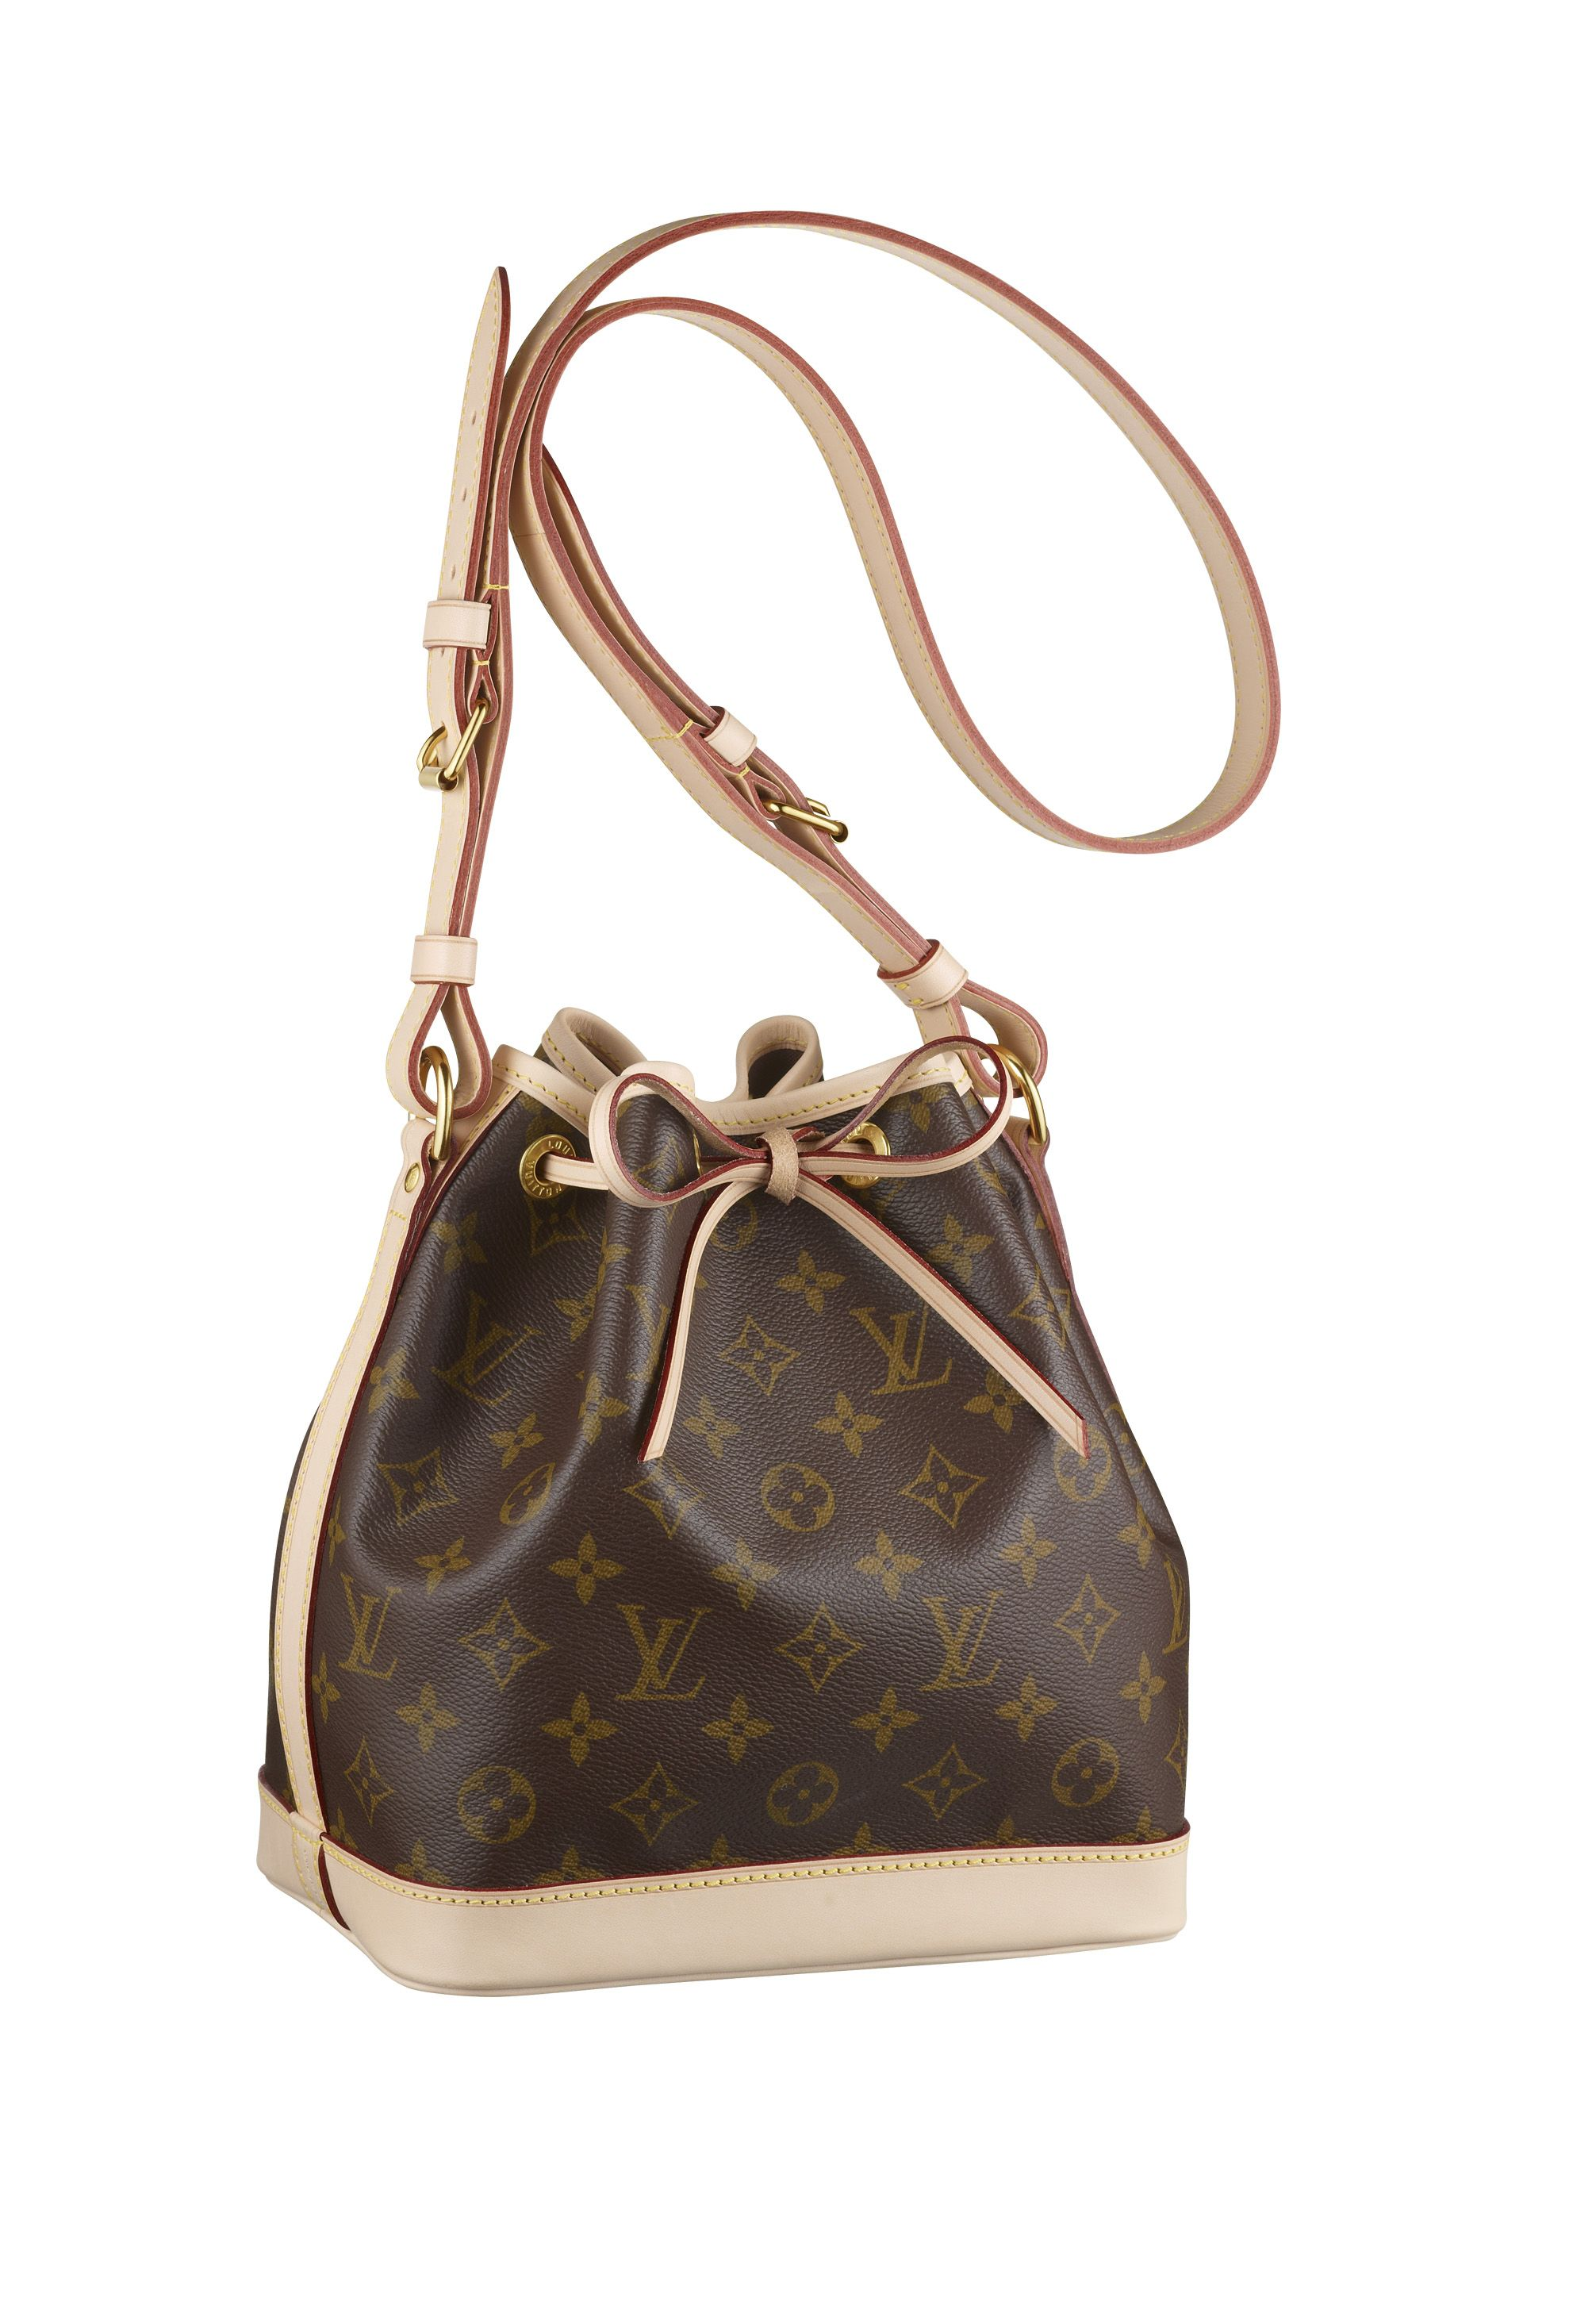 6941cda4a6db Introducing the LV Noe BB monogram bag. My next goal for the next year...i  just love the style of this bag and the high quality that this bag last  forever ...